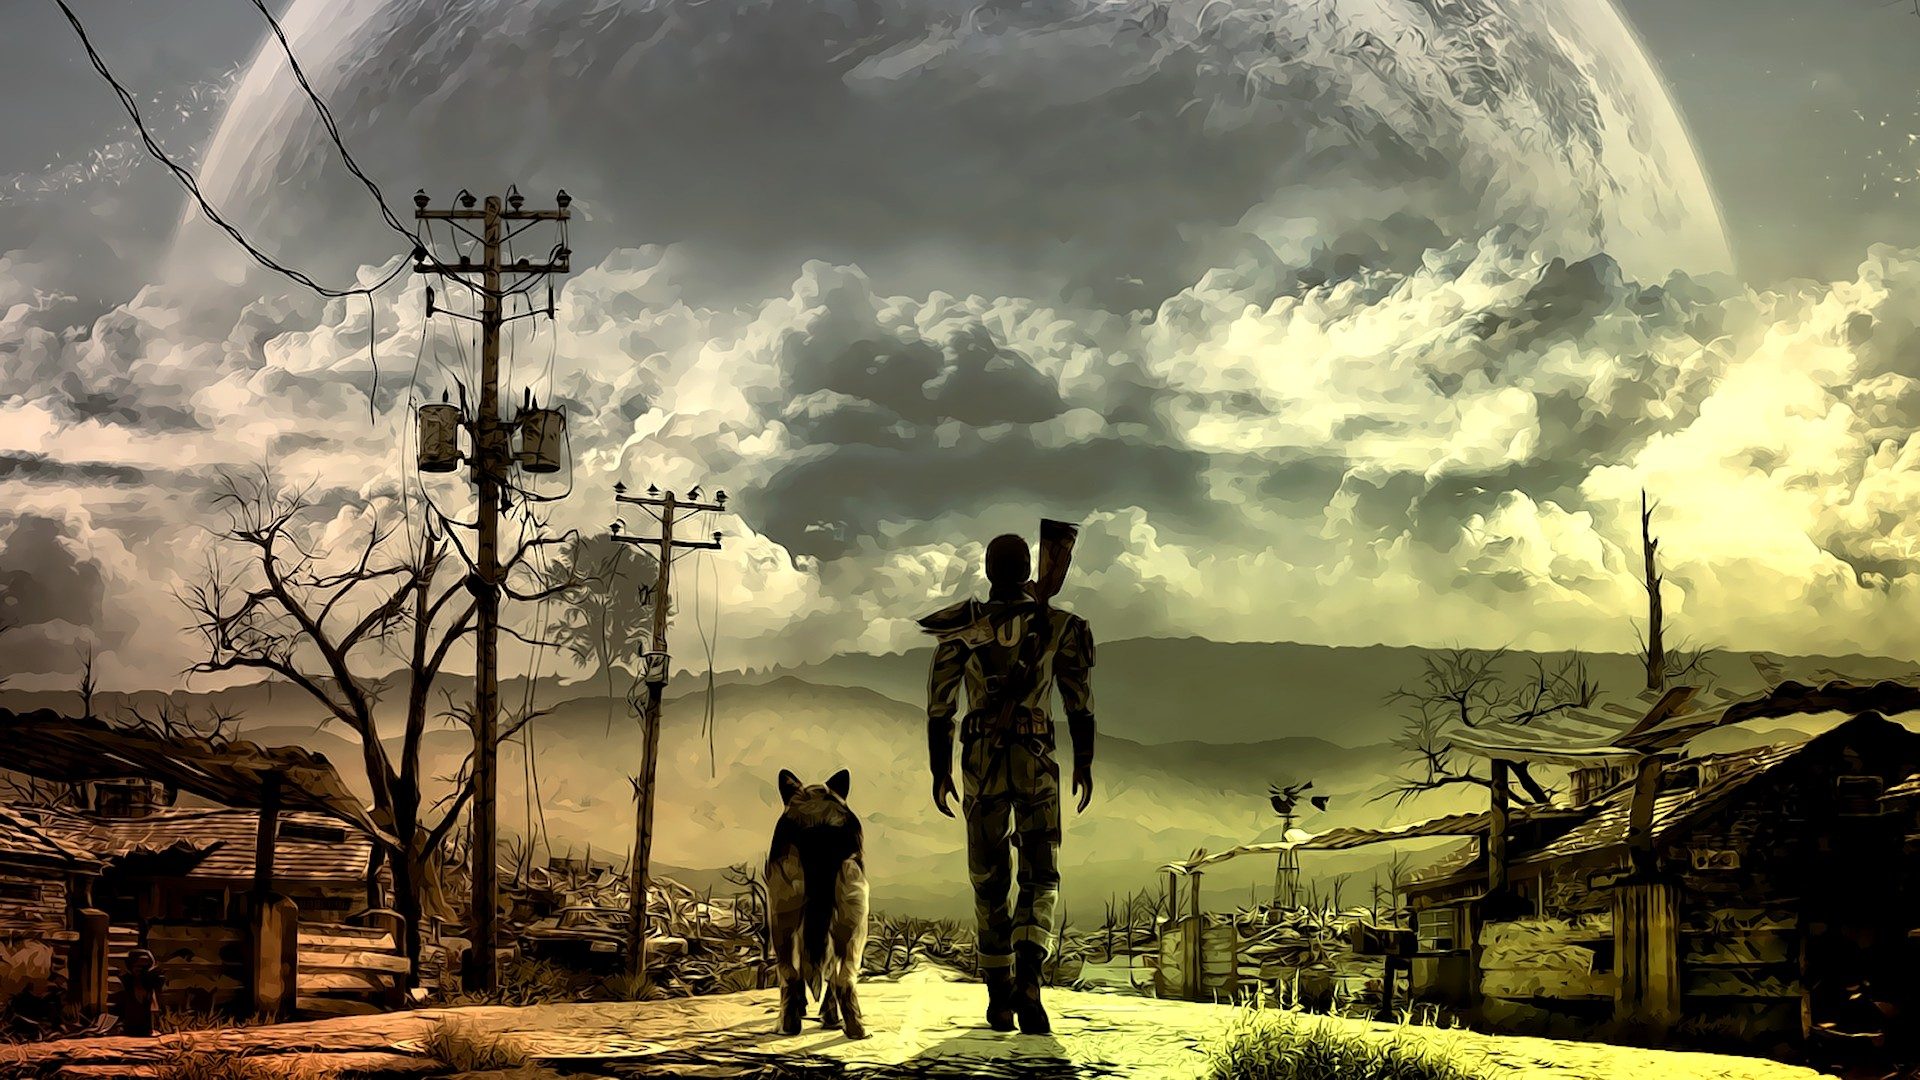 1920x1080 Fallout 3 Computer Wallpapers, Desktop Backgrounds |  | ID .